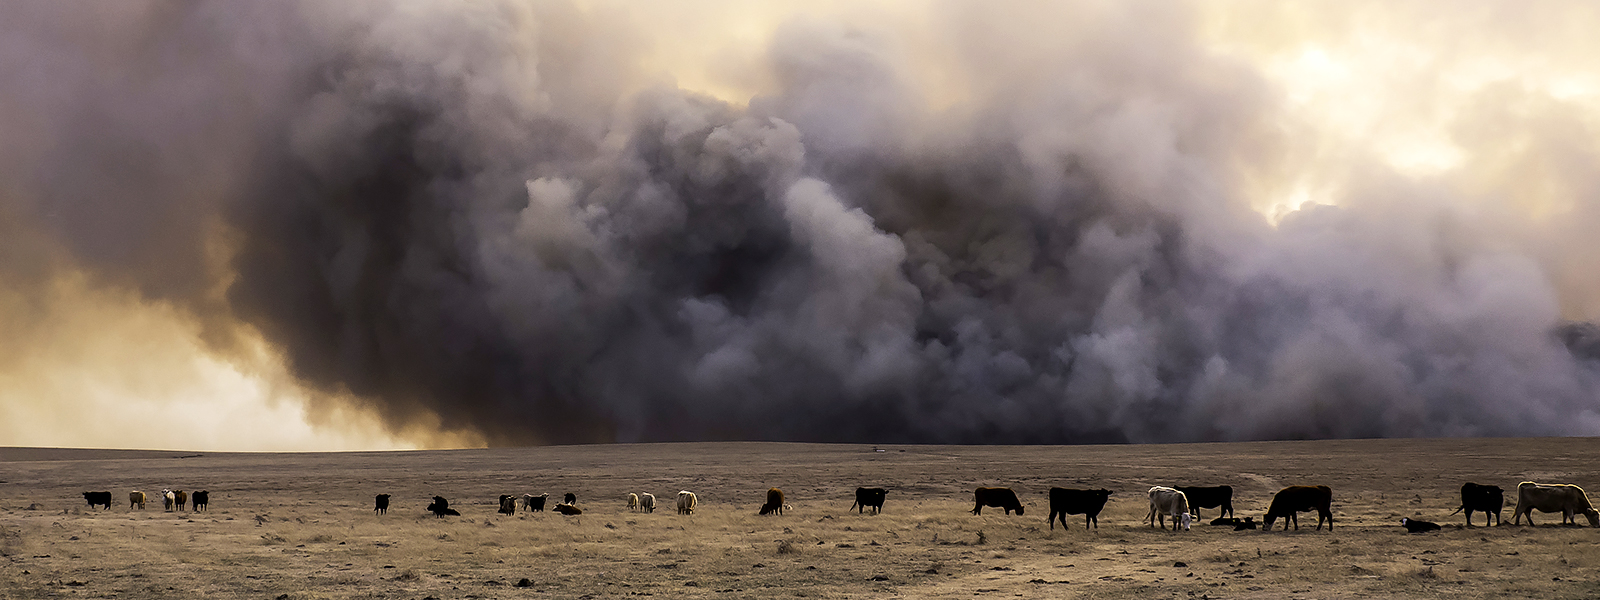 Cows in a field with a looming wildfire